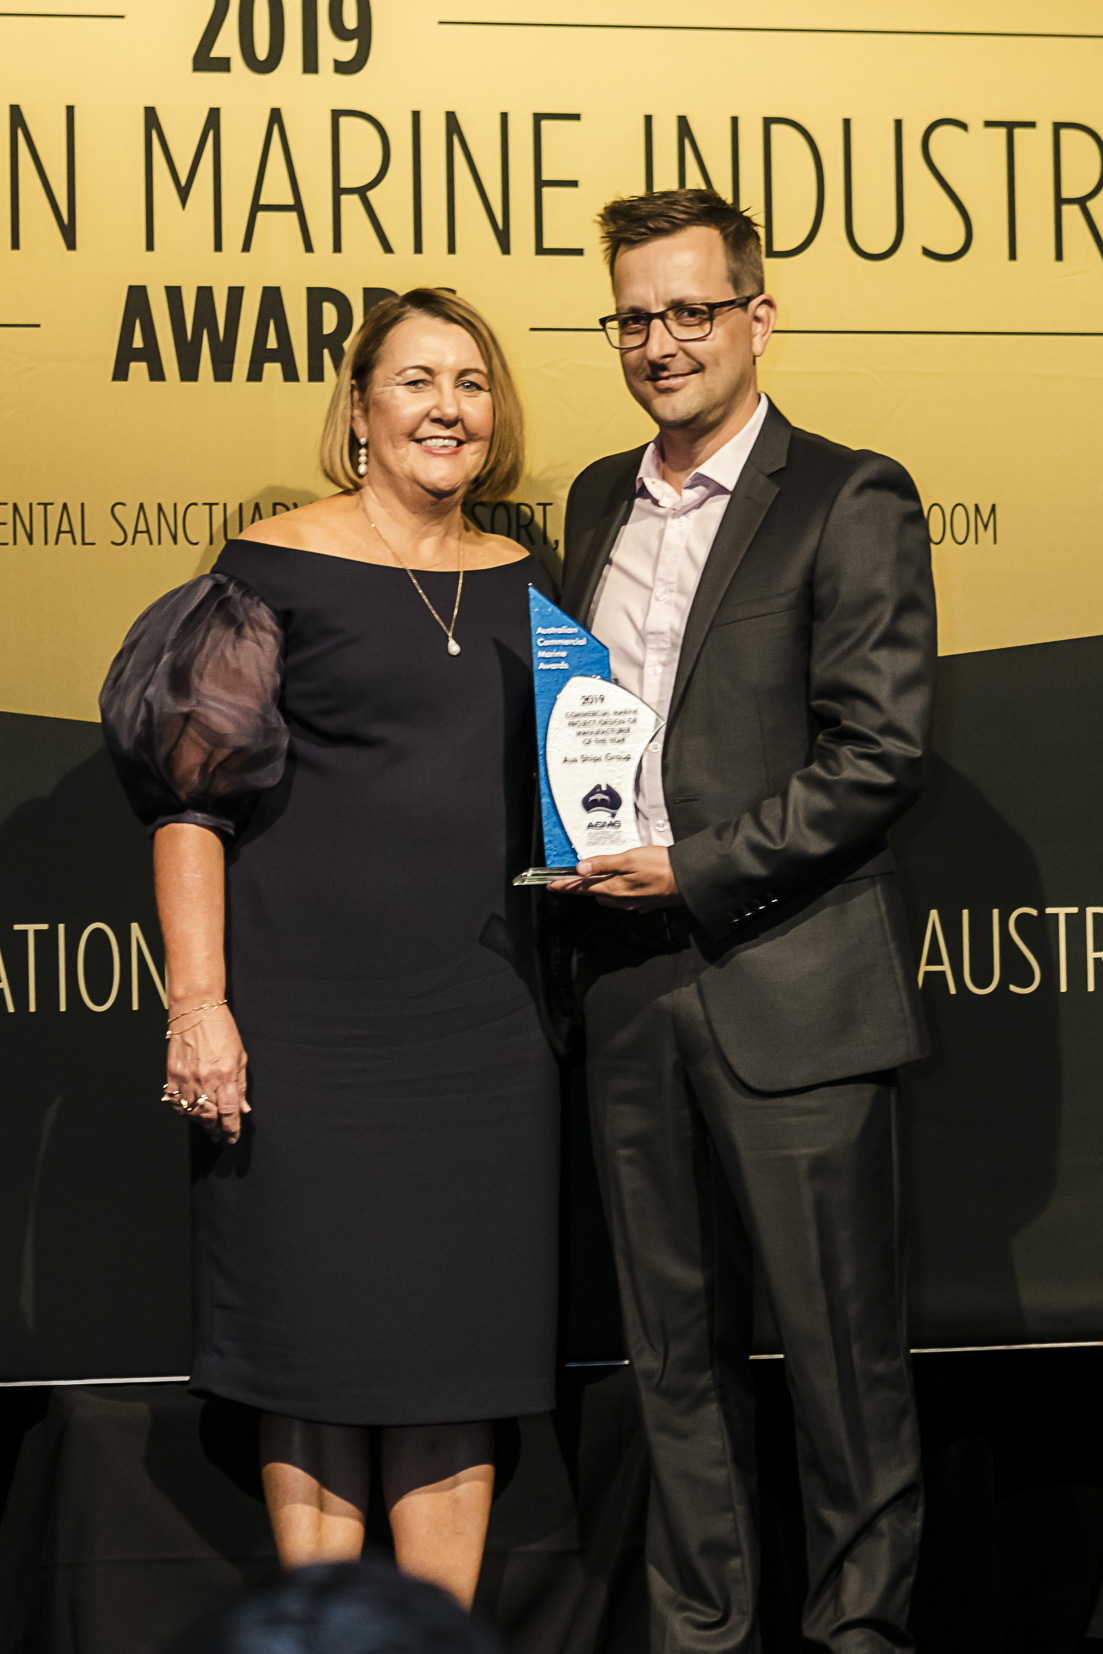 Tommy Ericson, CEO of Aus Ships Group receives the award for Commercial Marine Project/Design of Manufacturer of the Year for the InterContinental Hayman Island fleet of vessels.